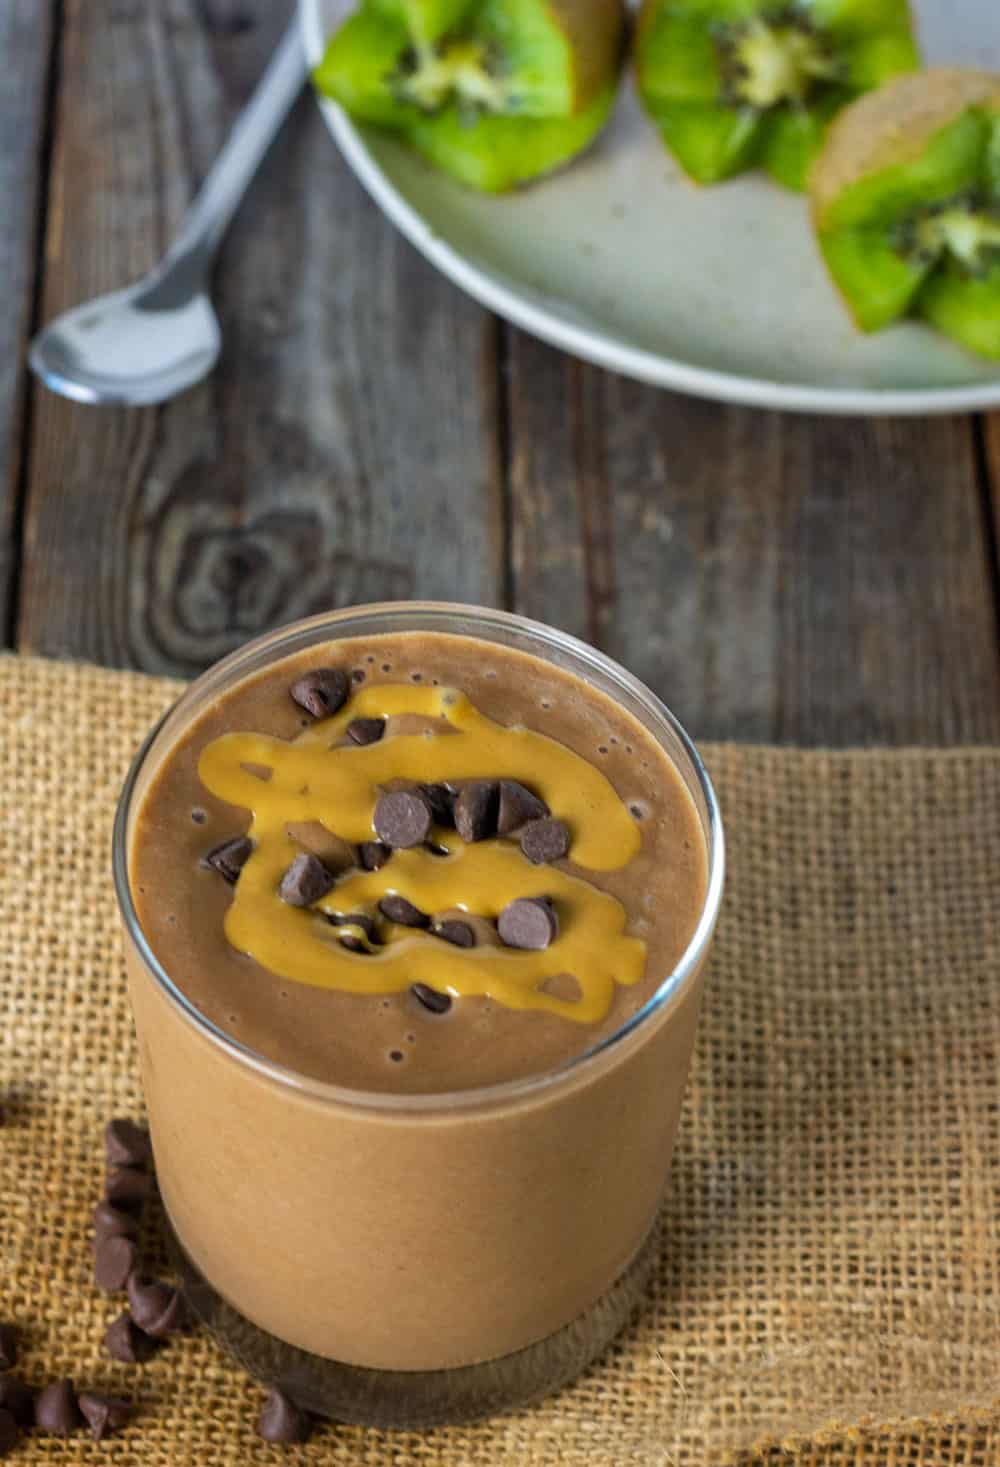 Overlay of Maca Peanut Butter Smoothie, easy recipe garnished with carob chips and peanut butter